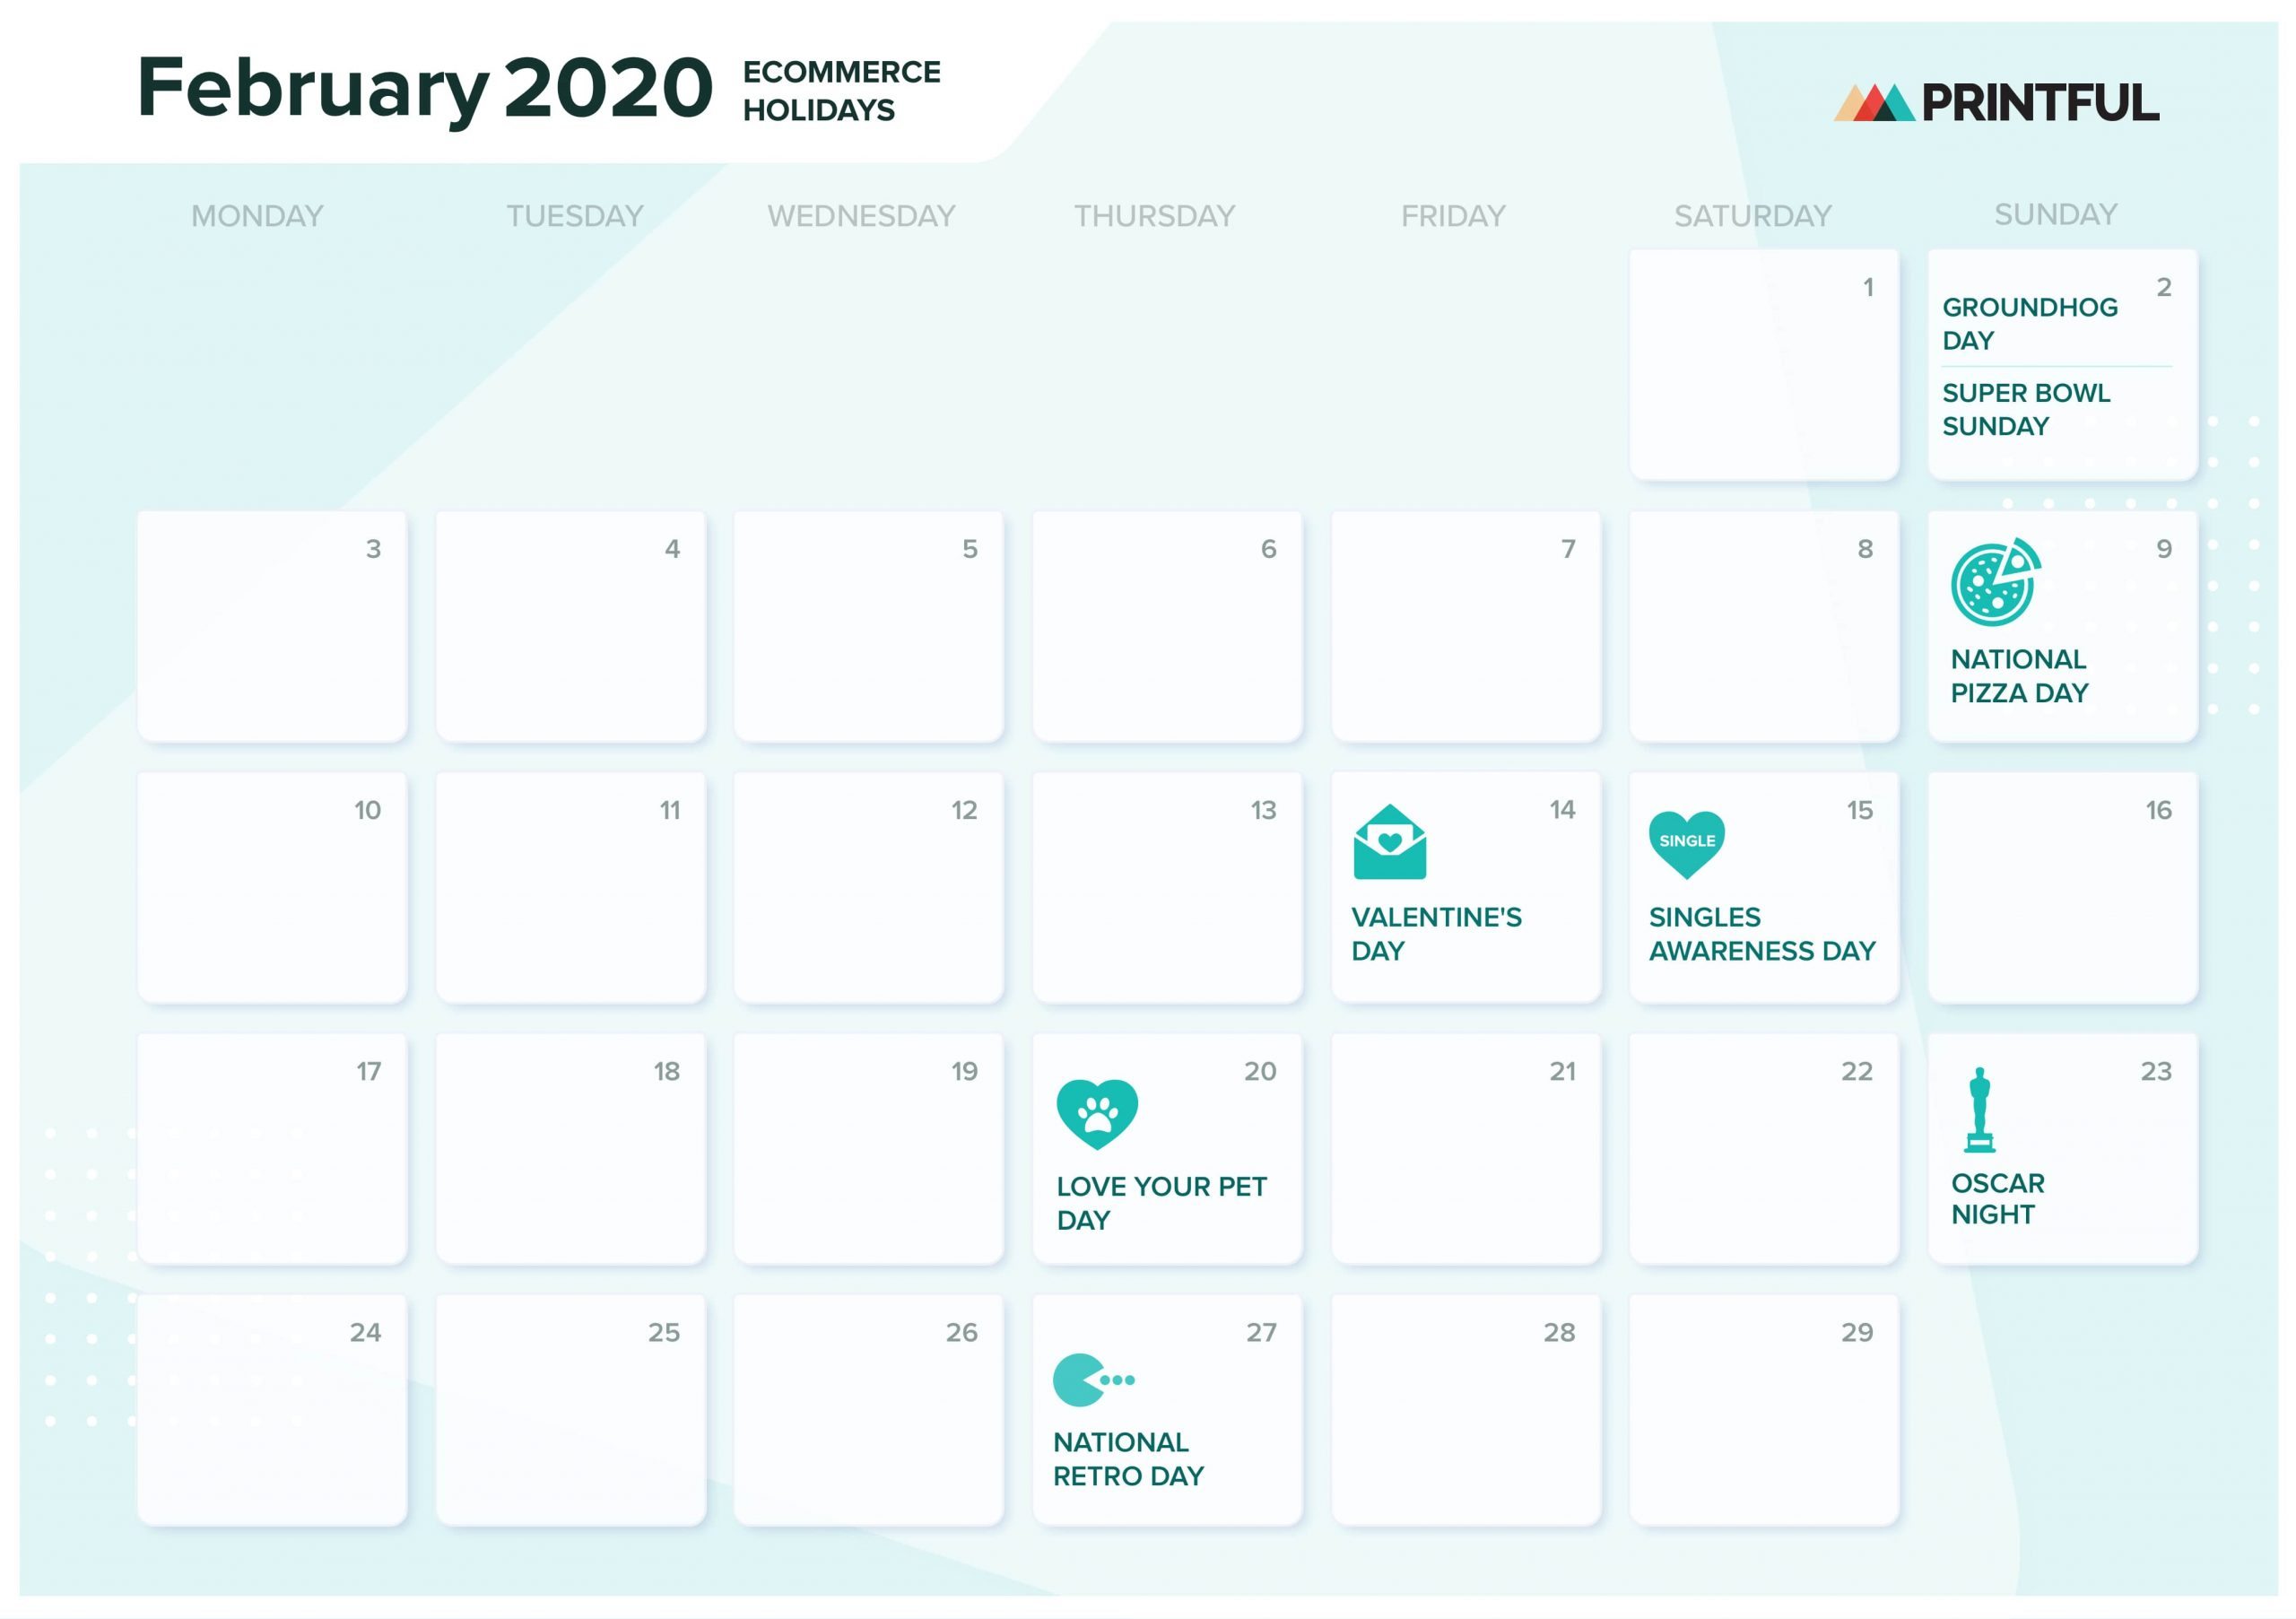 The Ultimate 2020 Ecommerce Holiday Marketing Calendar in 2020 Calendar Excel Hong Kong